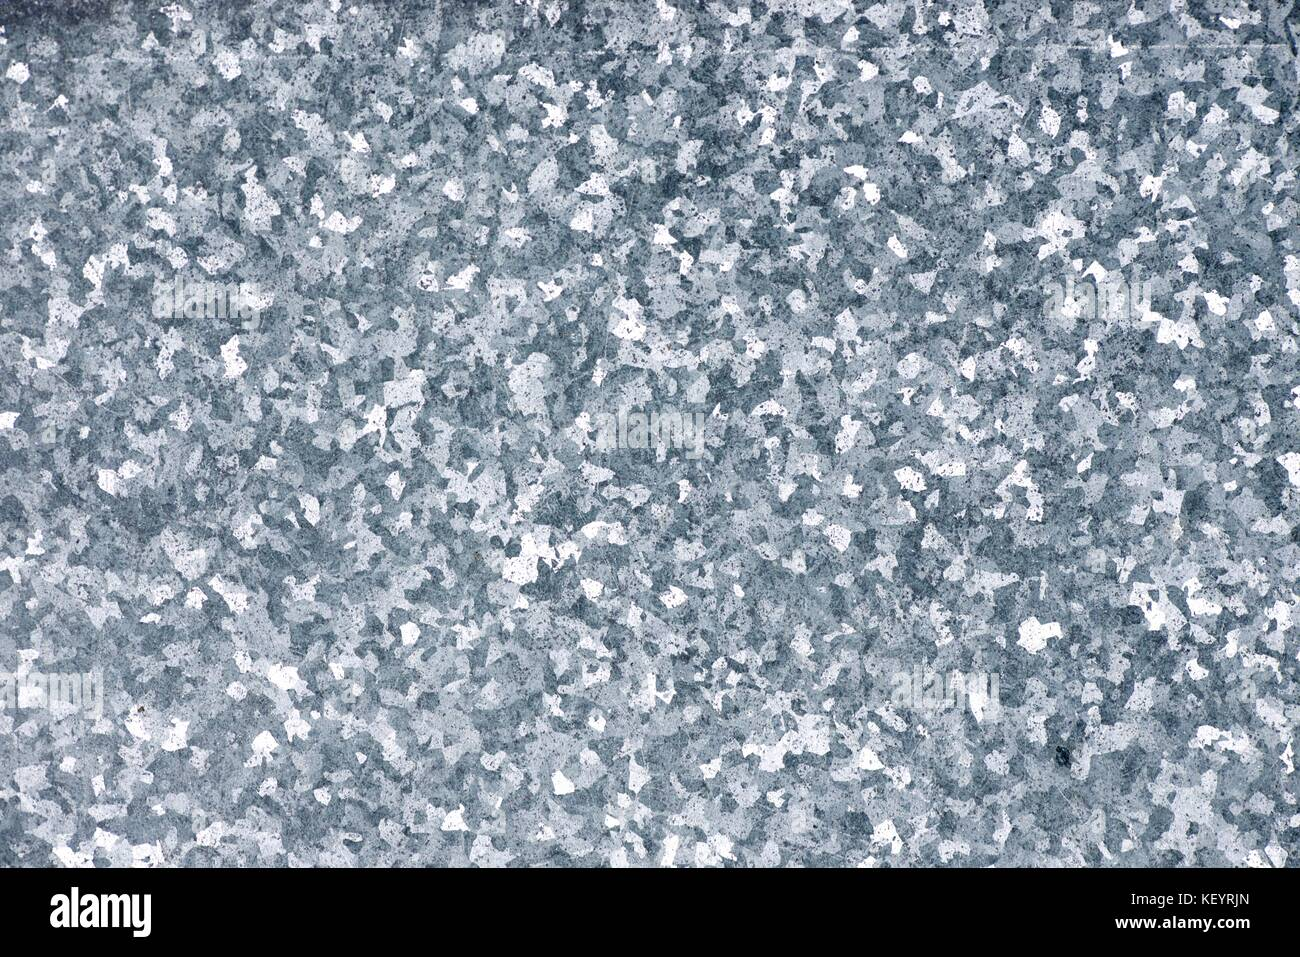 galvanized sheet background close up at high resolution - Stock Image